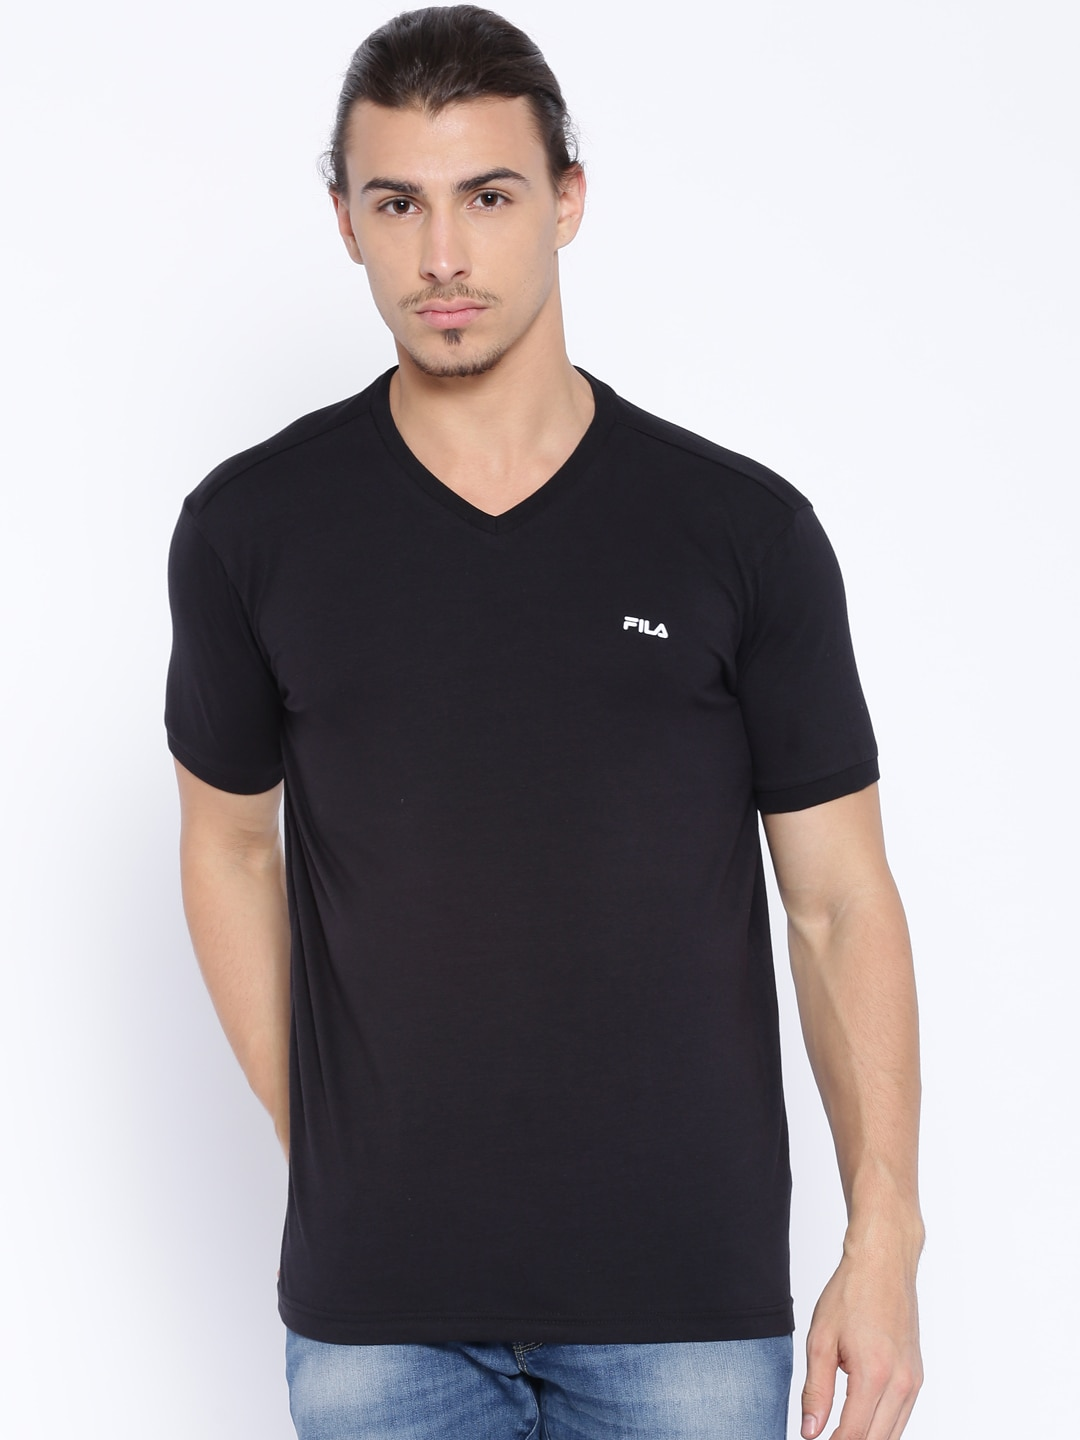 dfe71b6fb6b Fila T-shirt - Buy Fila T-shirts for Men   Women Online in India